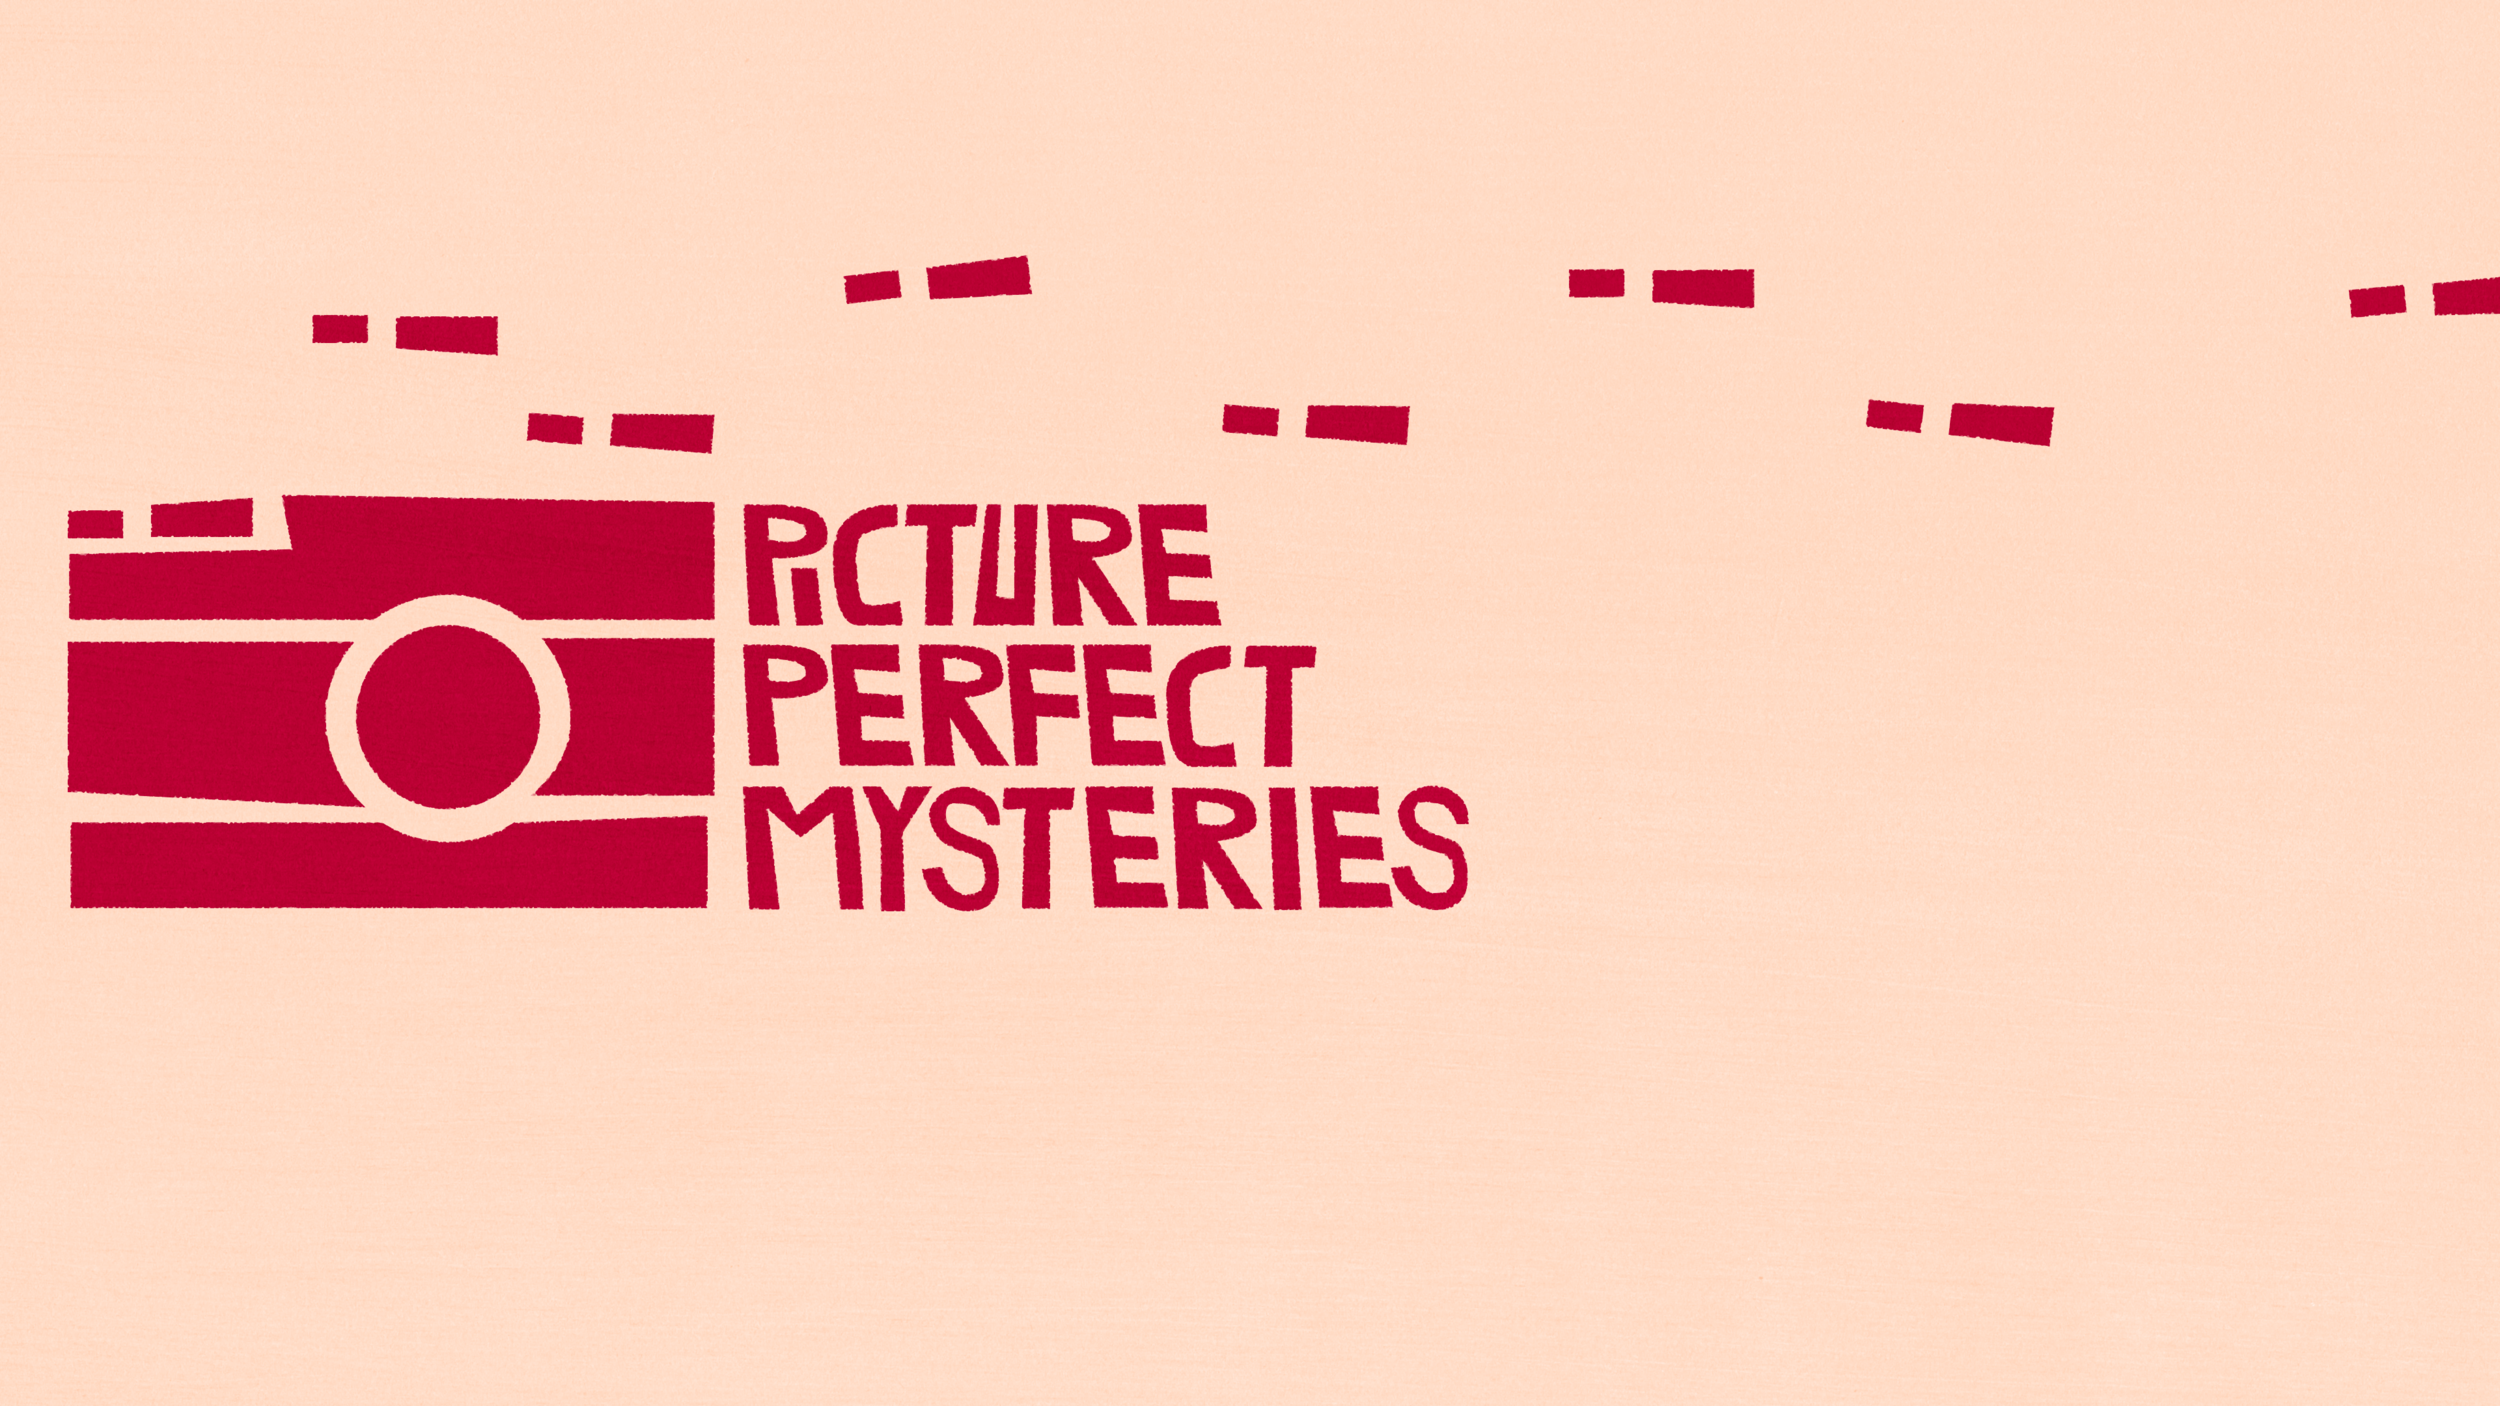 PicturePerfectMysteries_MarkStyleFrames_v002-2.png